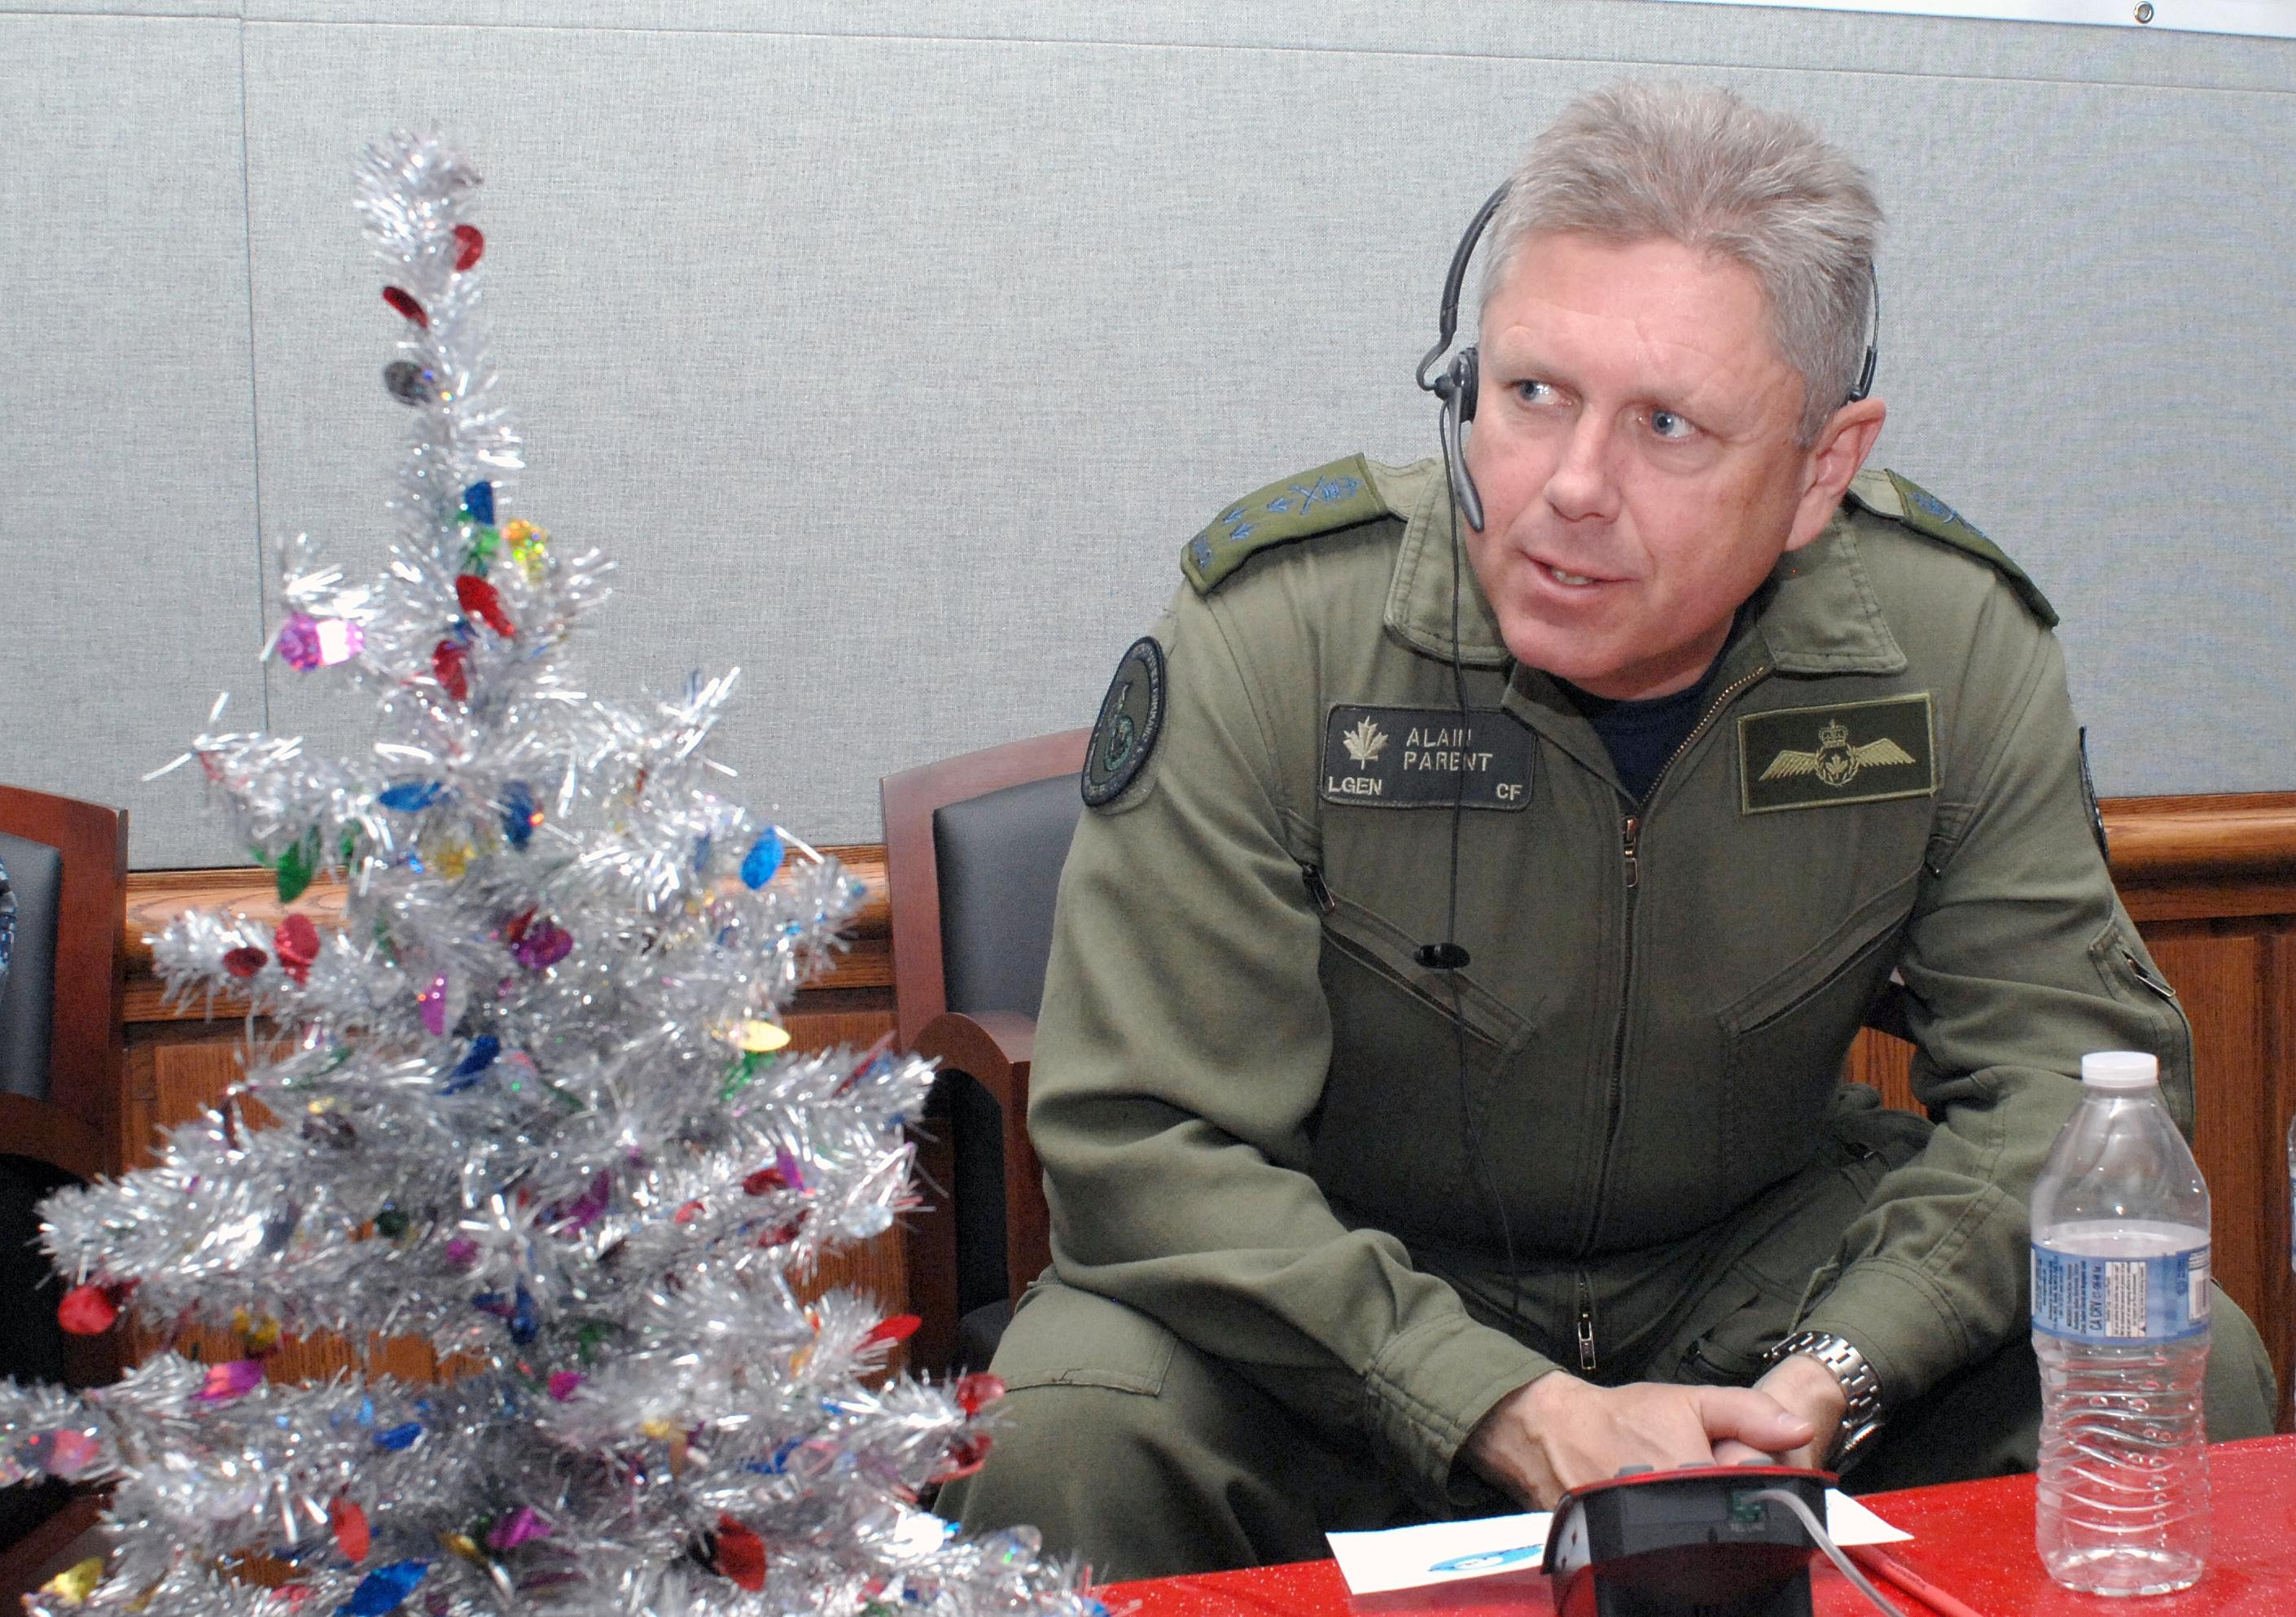 Lieutenant-General Alain Parent, then-deputy commander of NORAD, takes calls at the NORAD Tracks Santa operations center at NORAD Headquarters in Colorado on December 24, 2012. PHOTO: Technical Sergeant Thomas J. Doscher, USAF